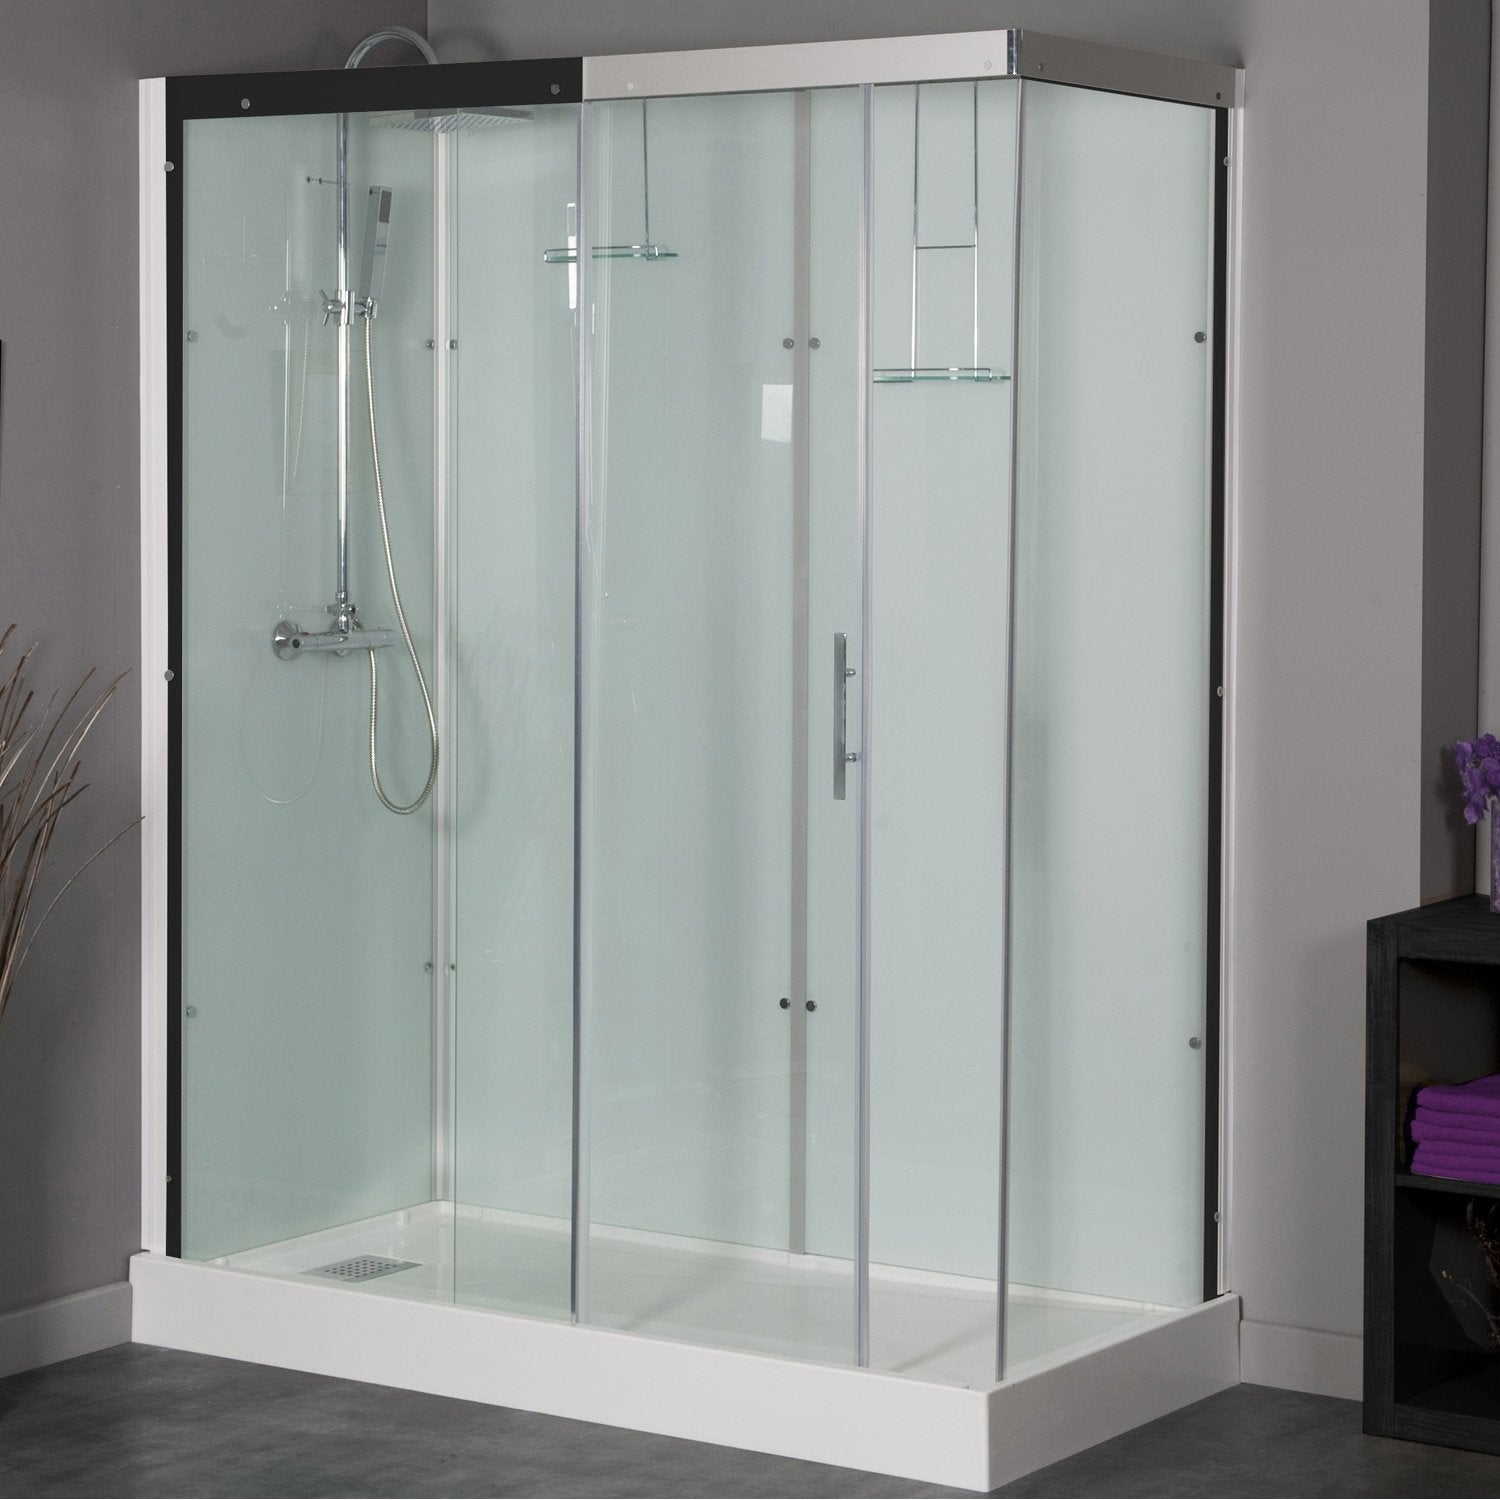 Cabine de douche rectangulaire 160x80 cm thalaglass 2 for Leroy merlin porte douche